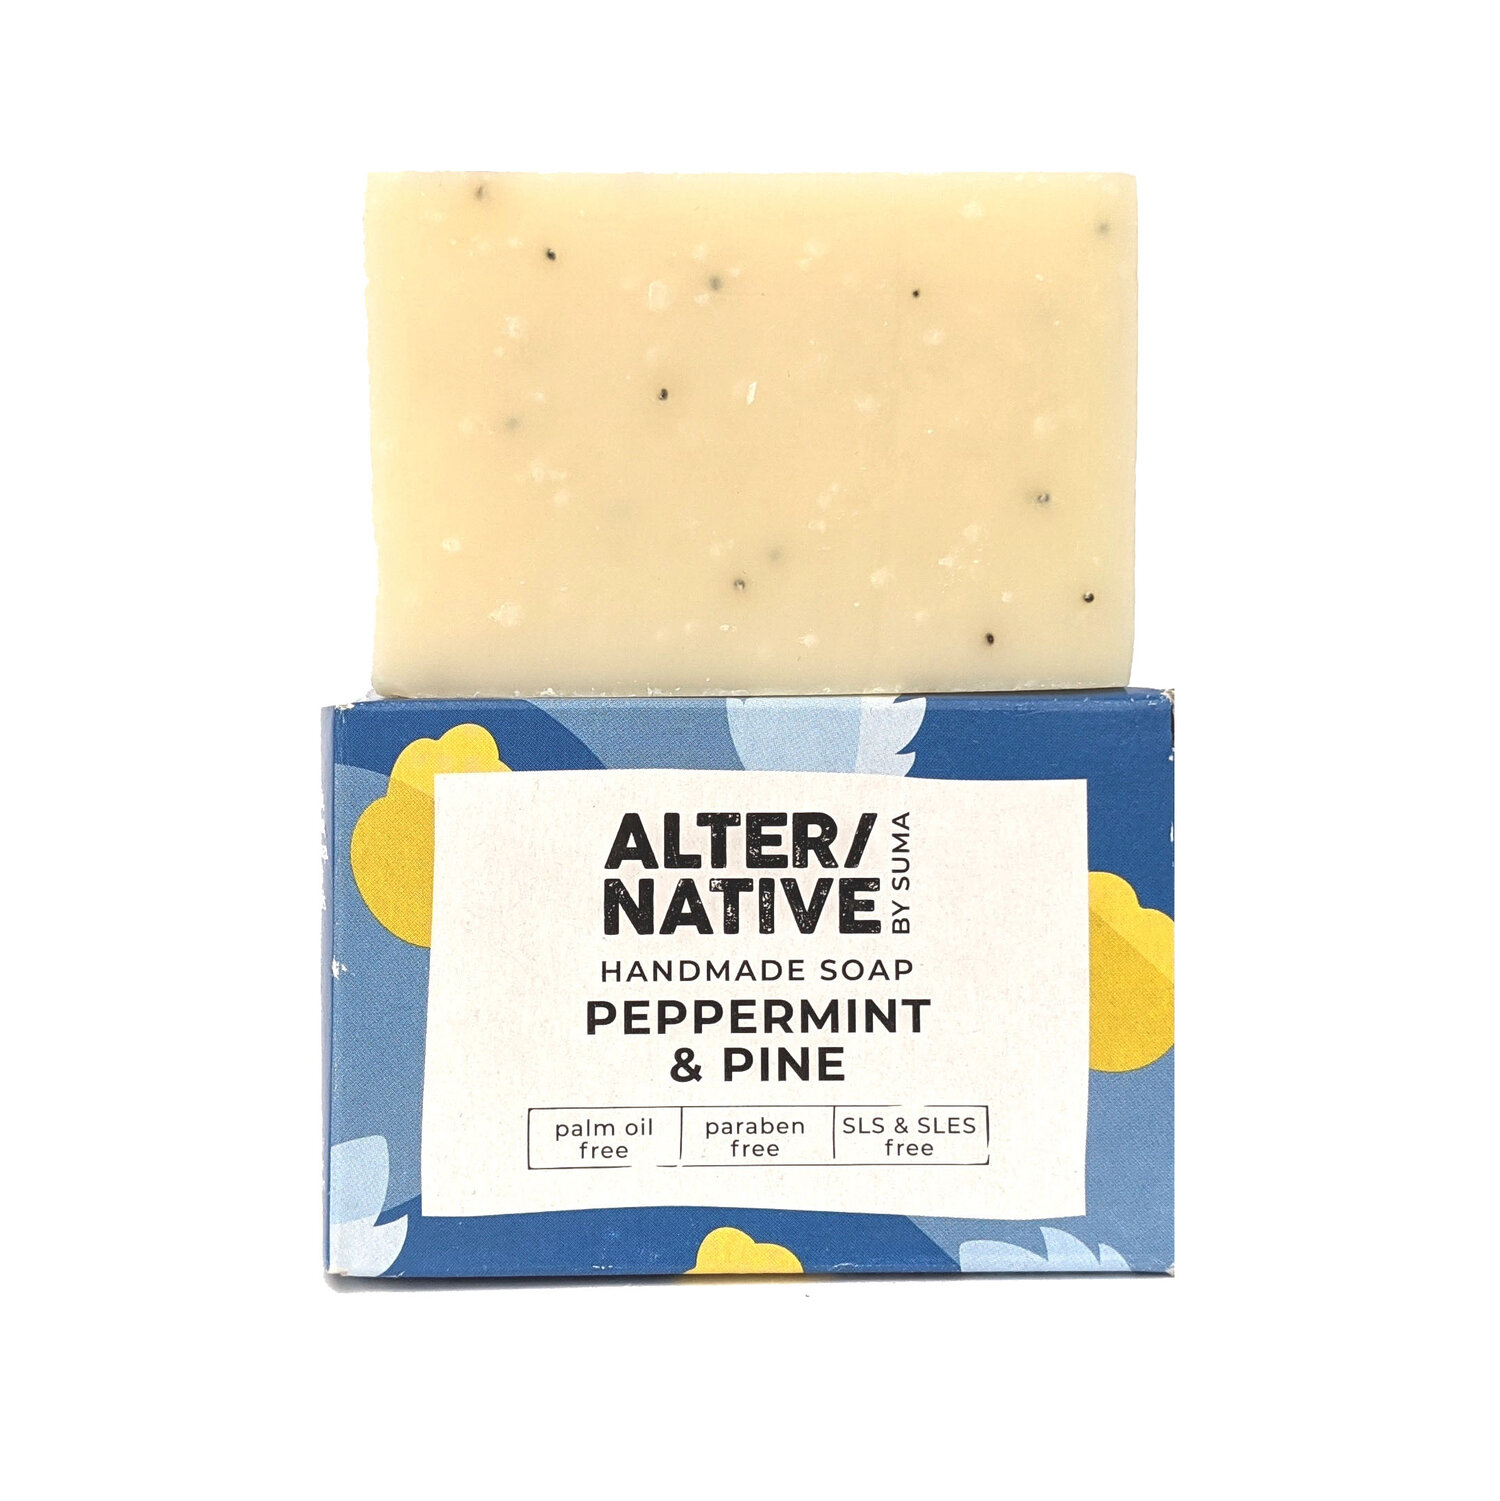 Peppermint & Pine Soap (alter/native)